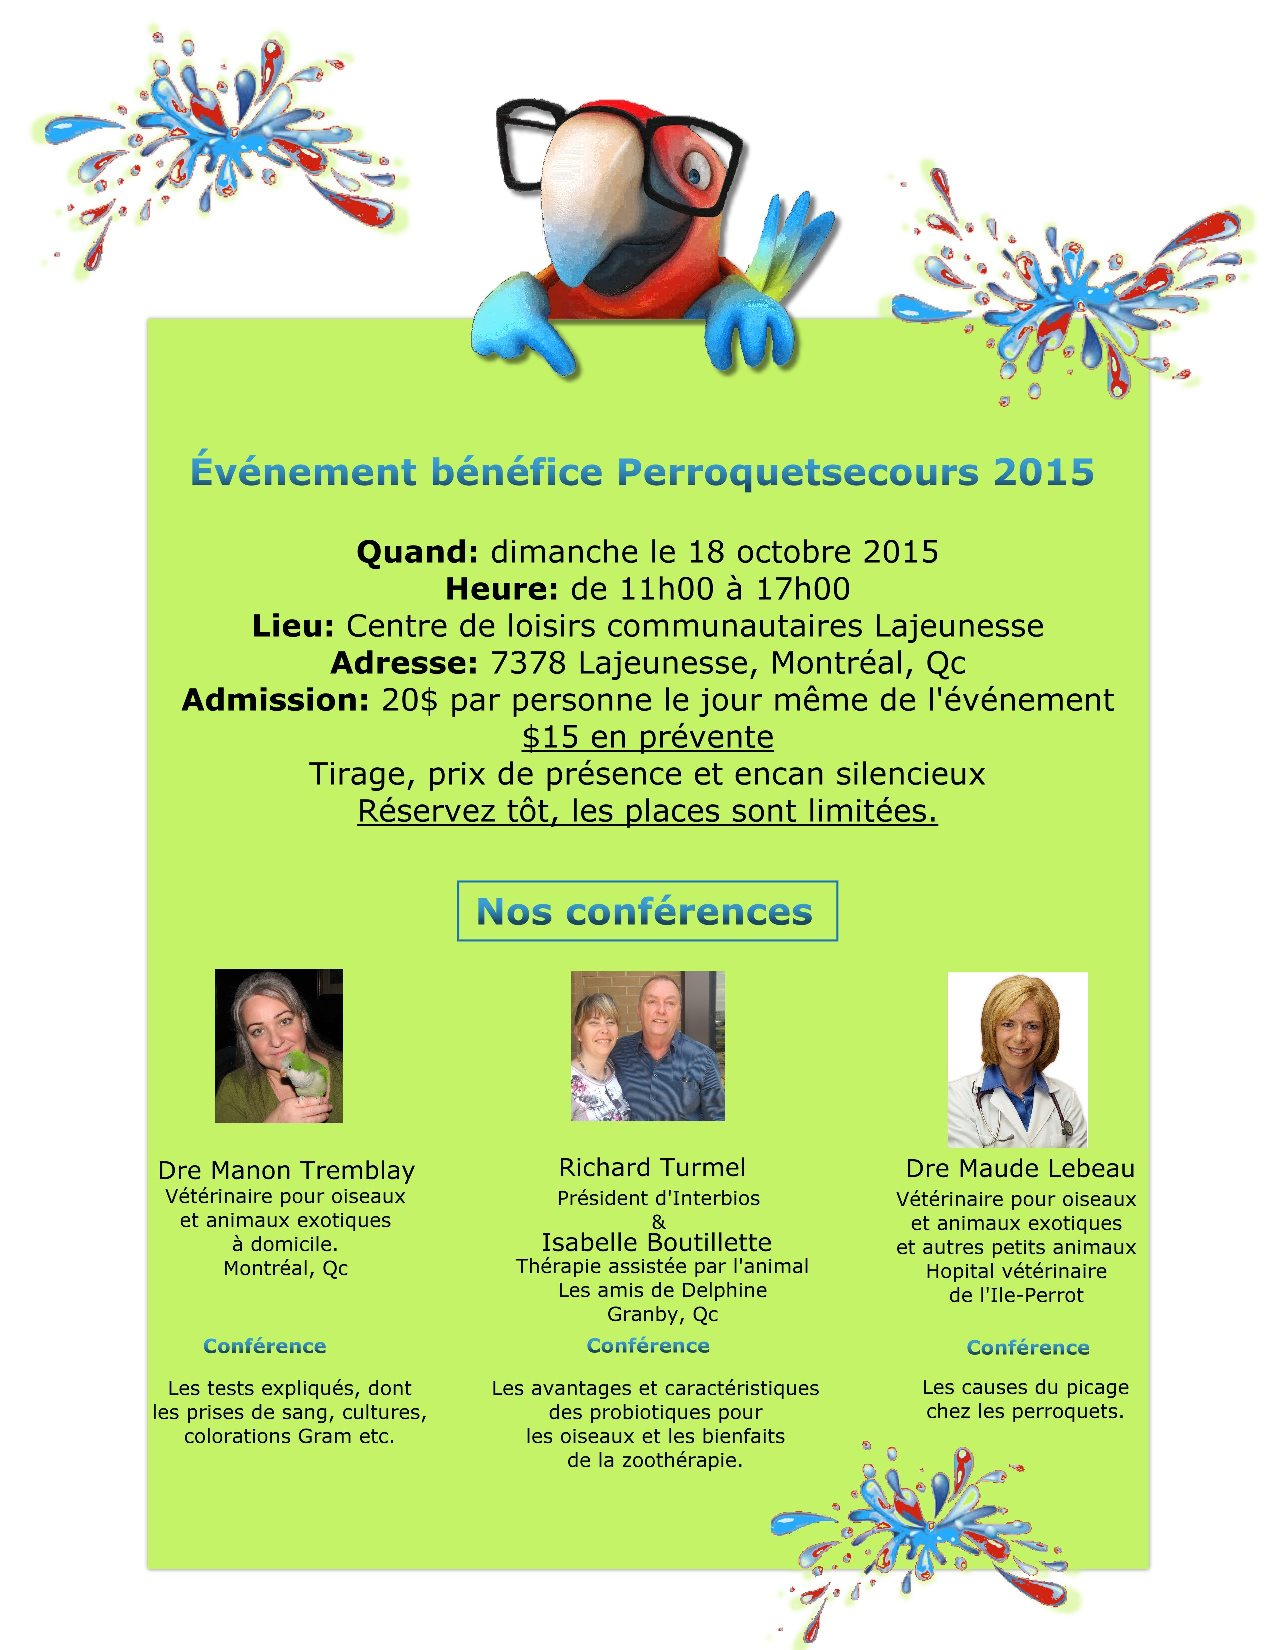 affiche_evenement_7 - Copie